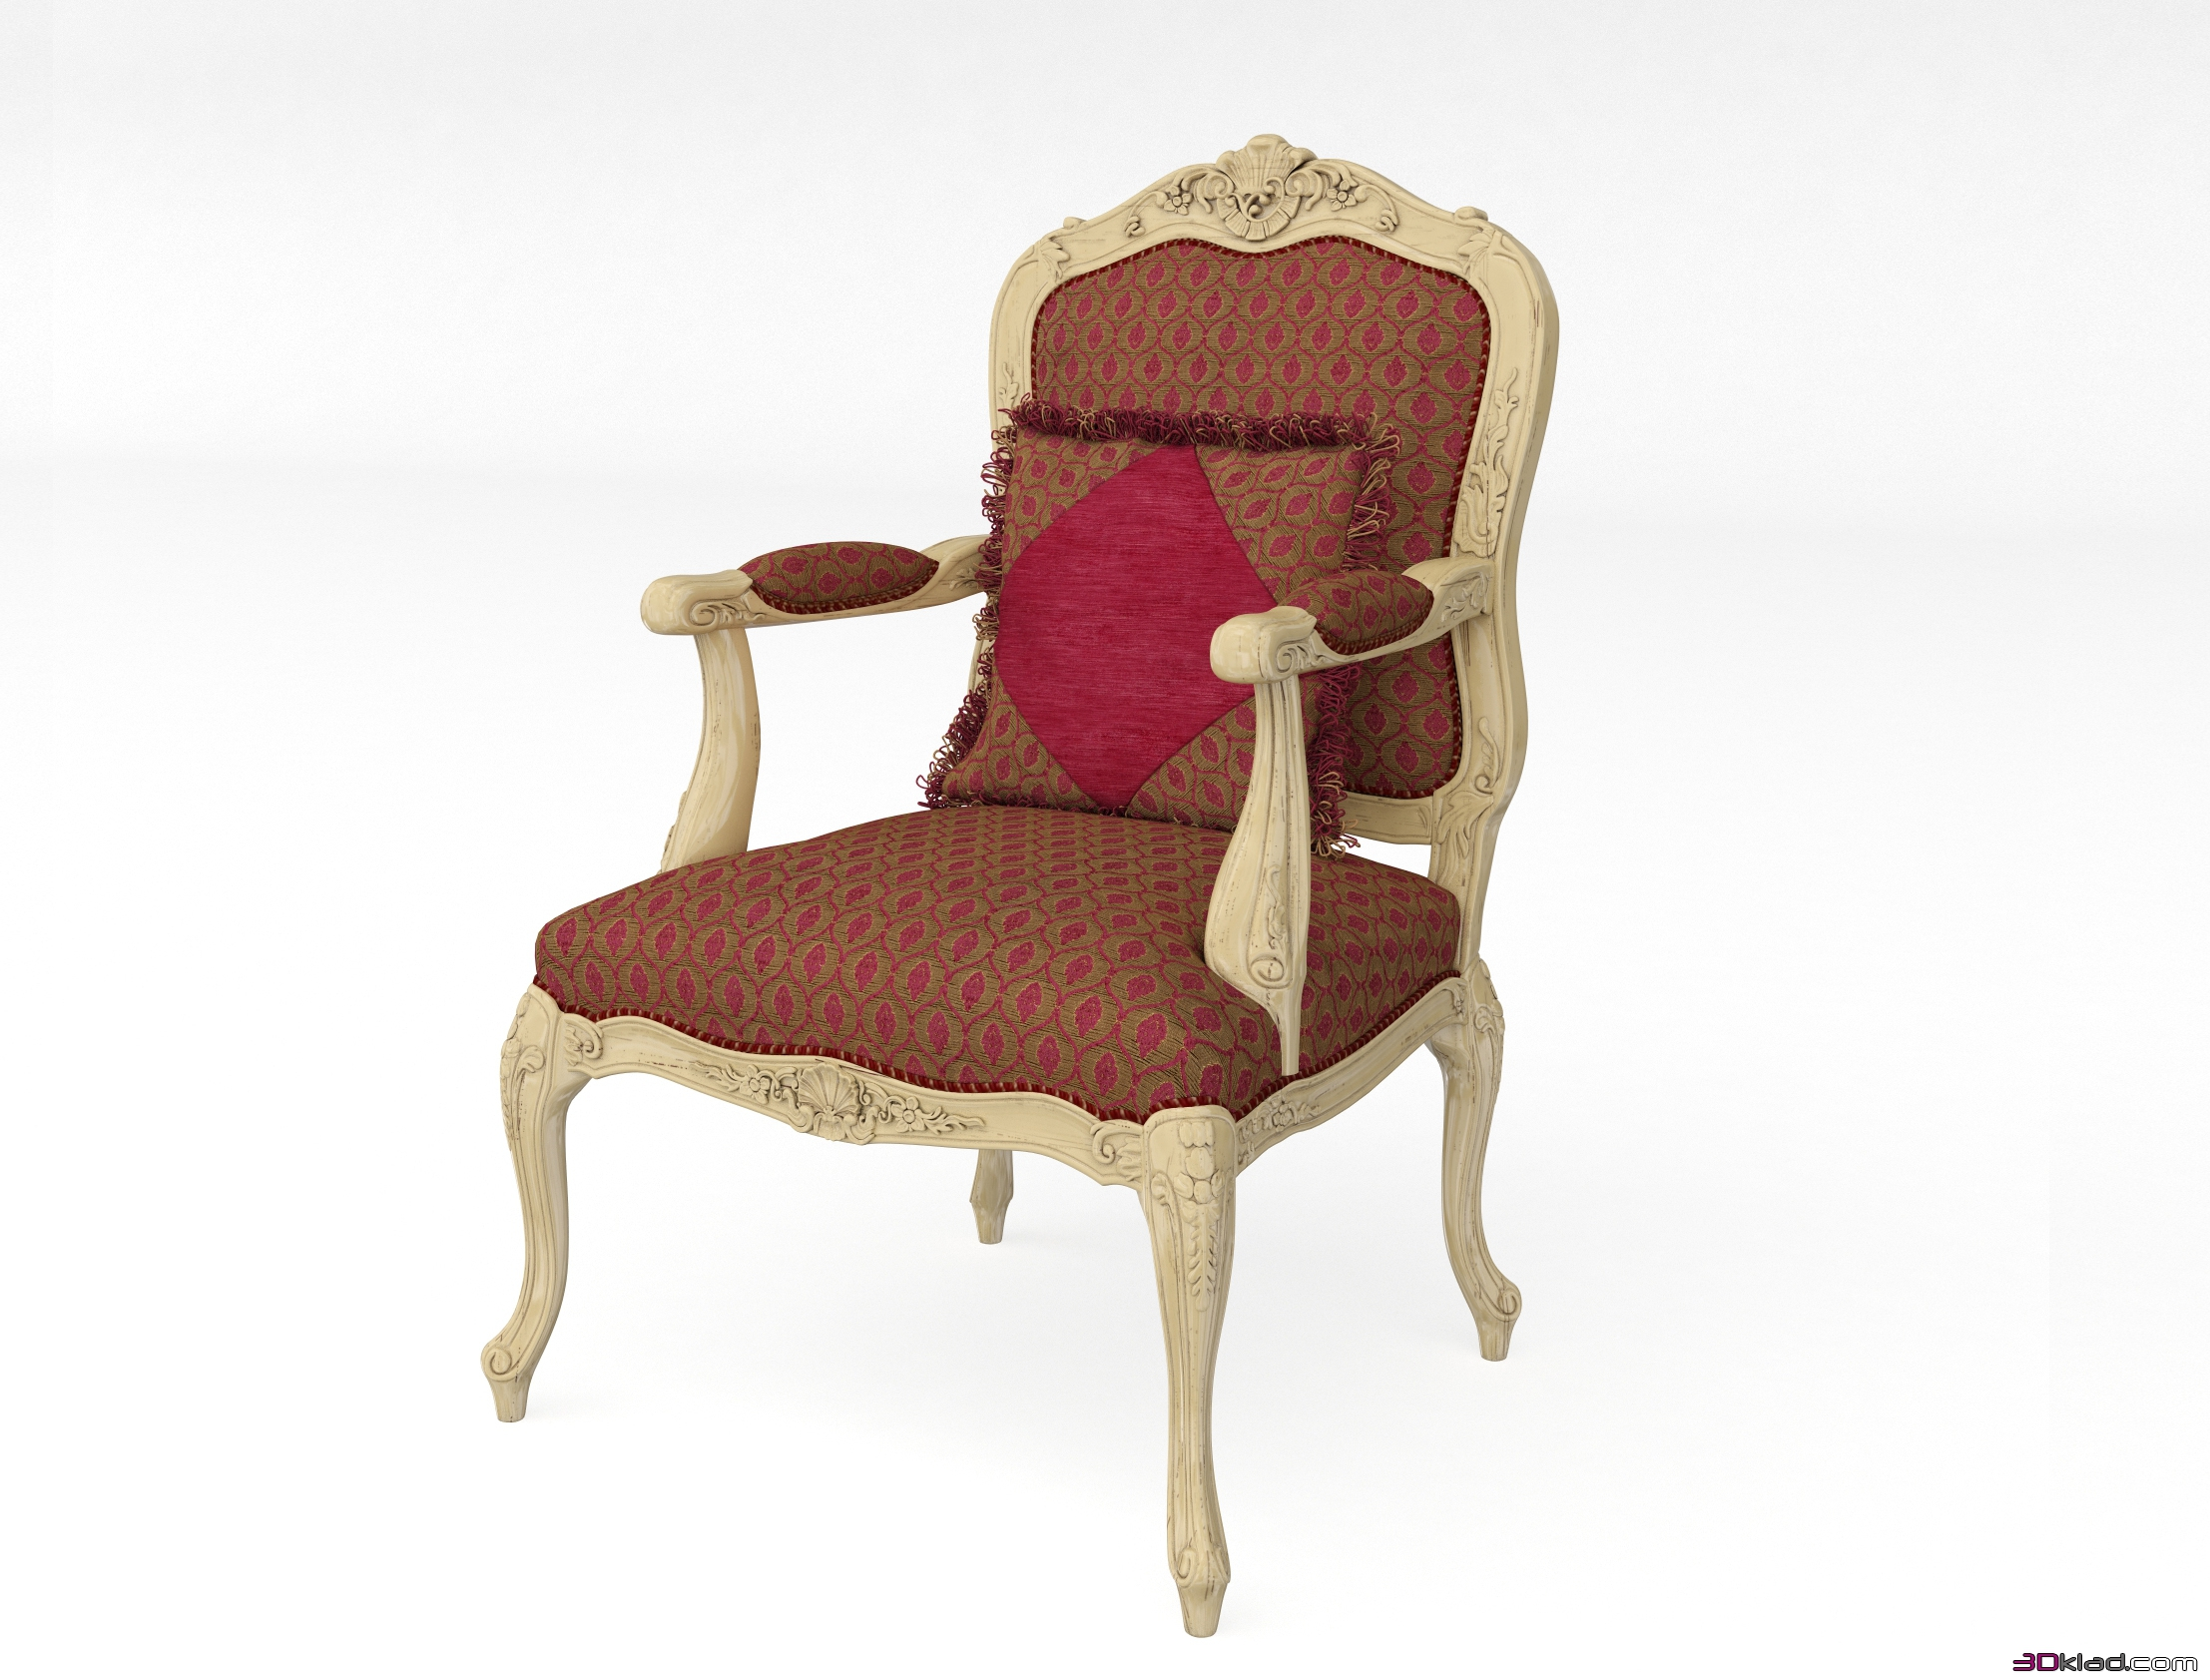 Classic chair art 13433 3d model armchair 3d furniture for Model furniture